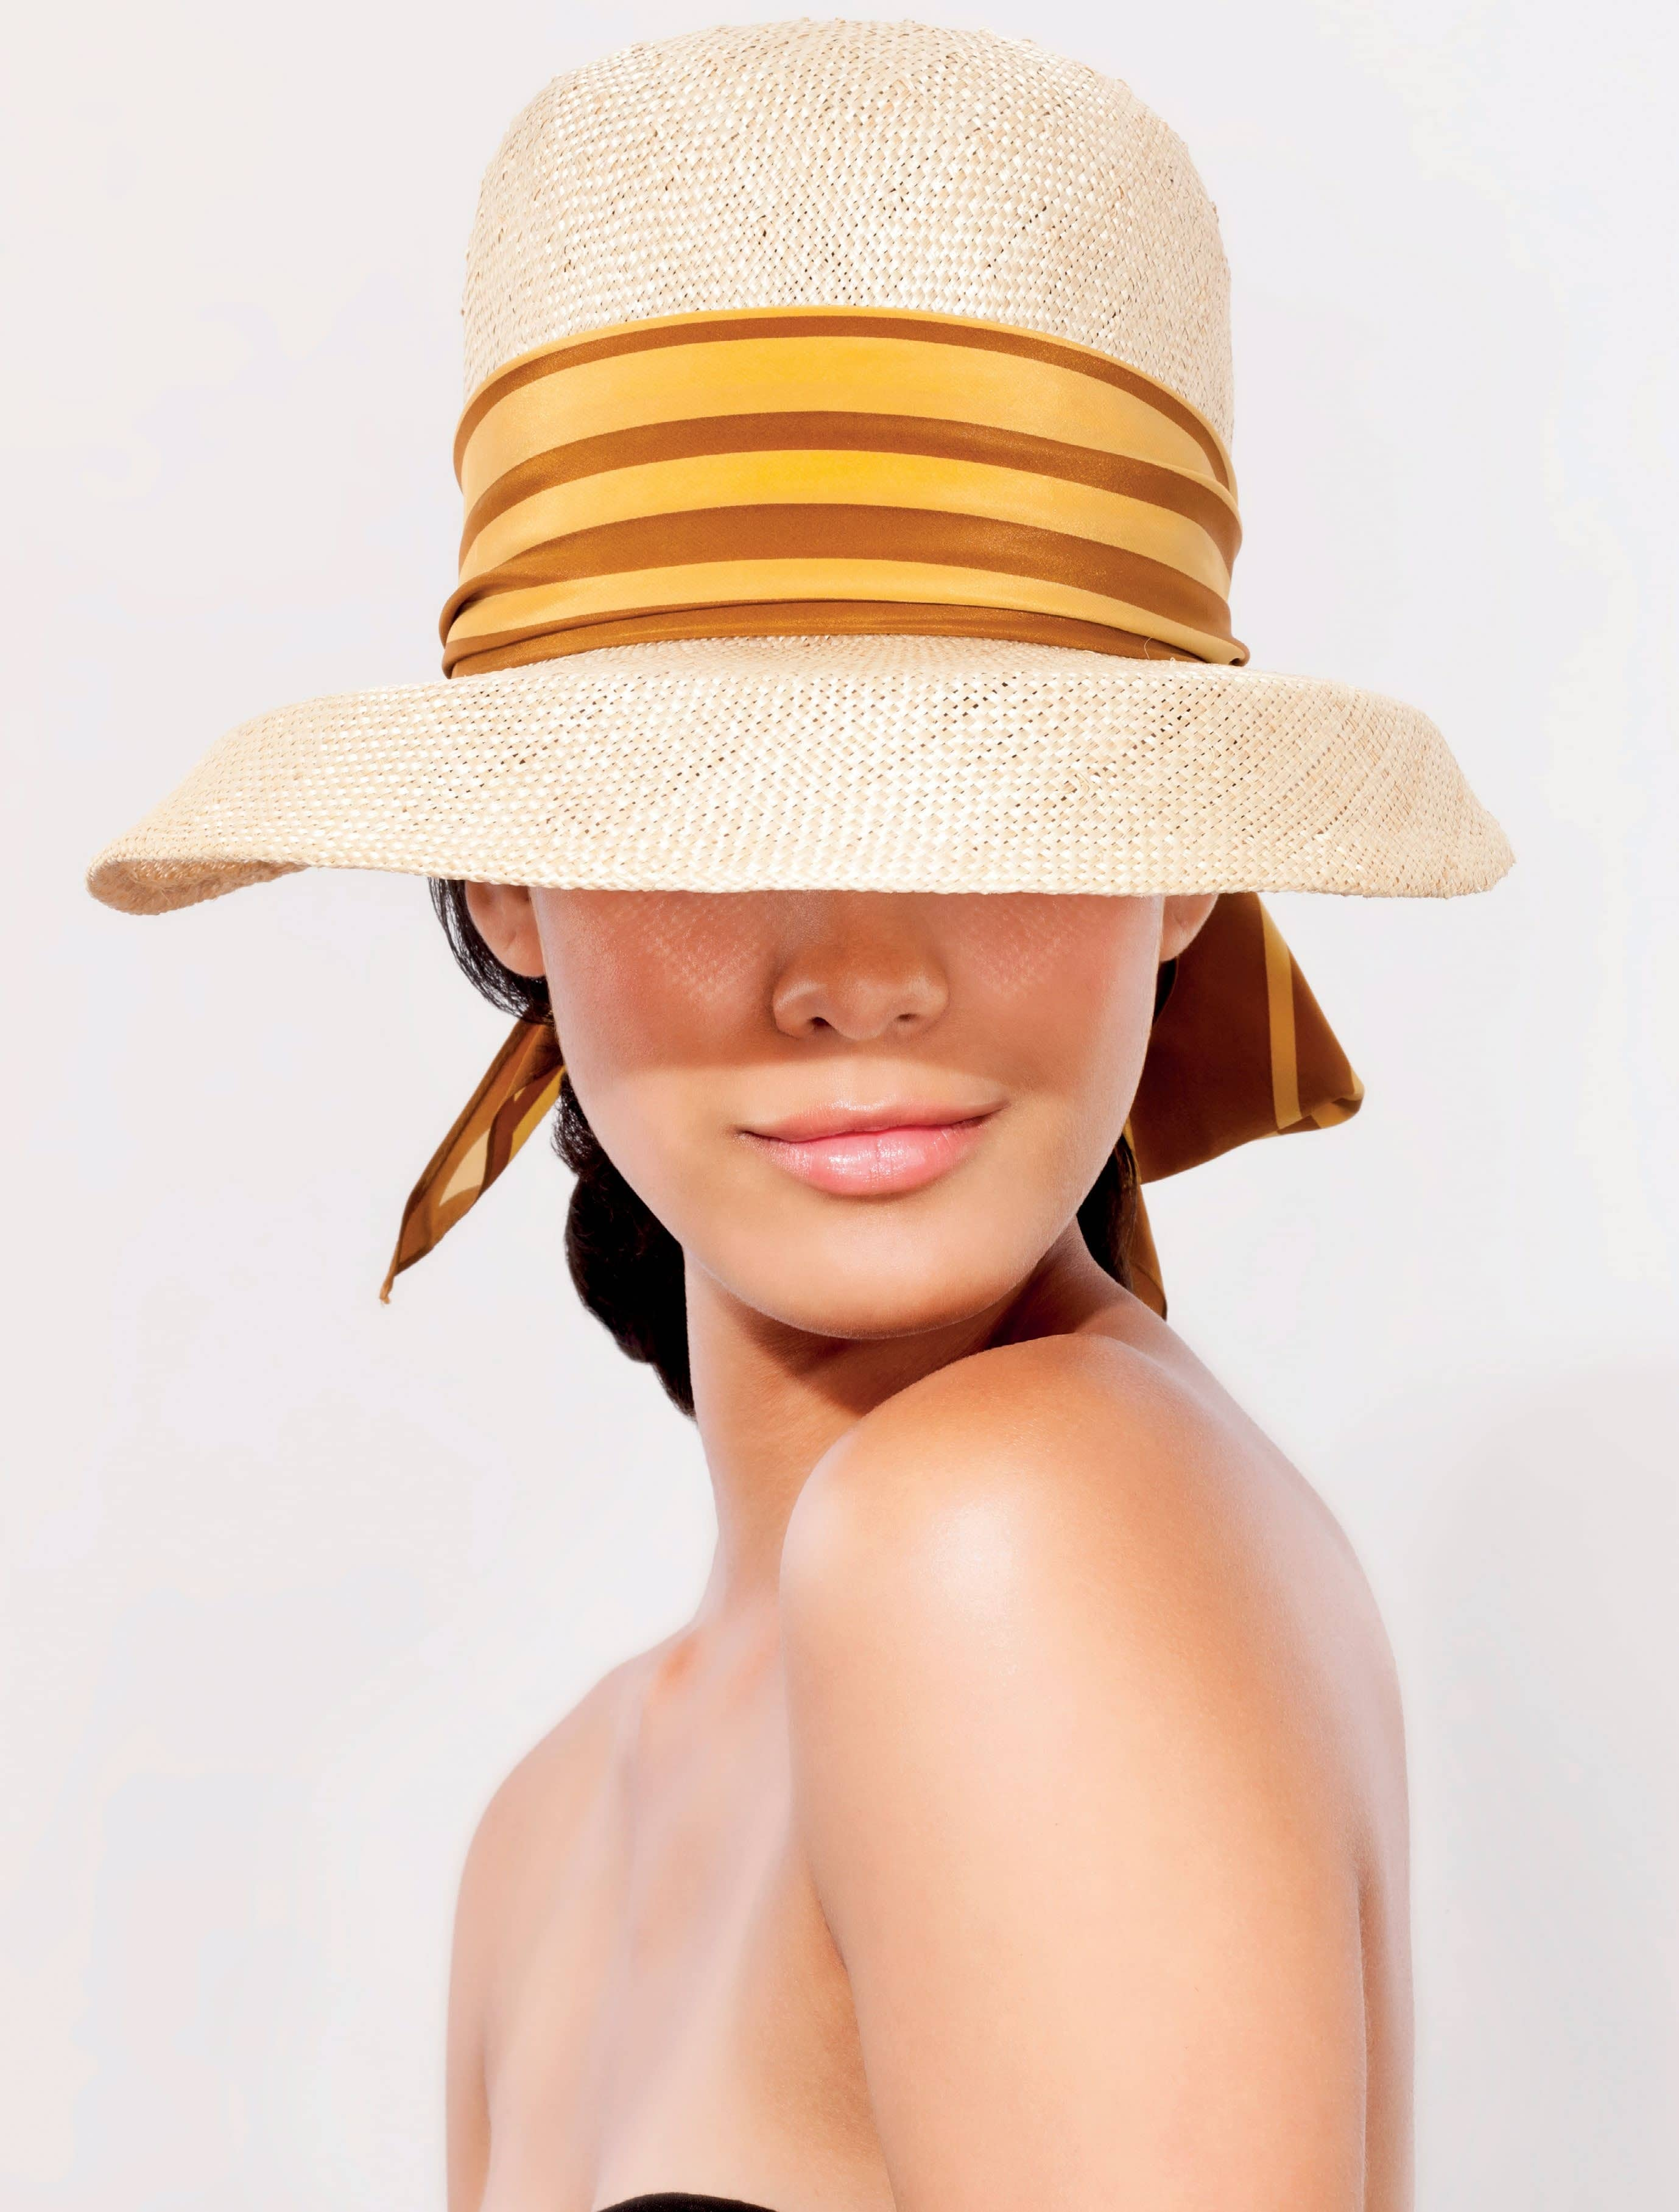 How Safe Is Your SPF?